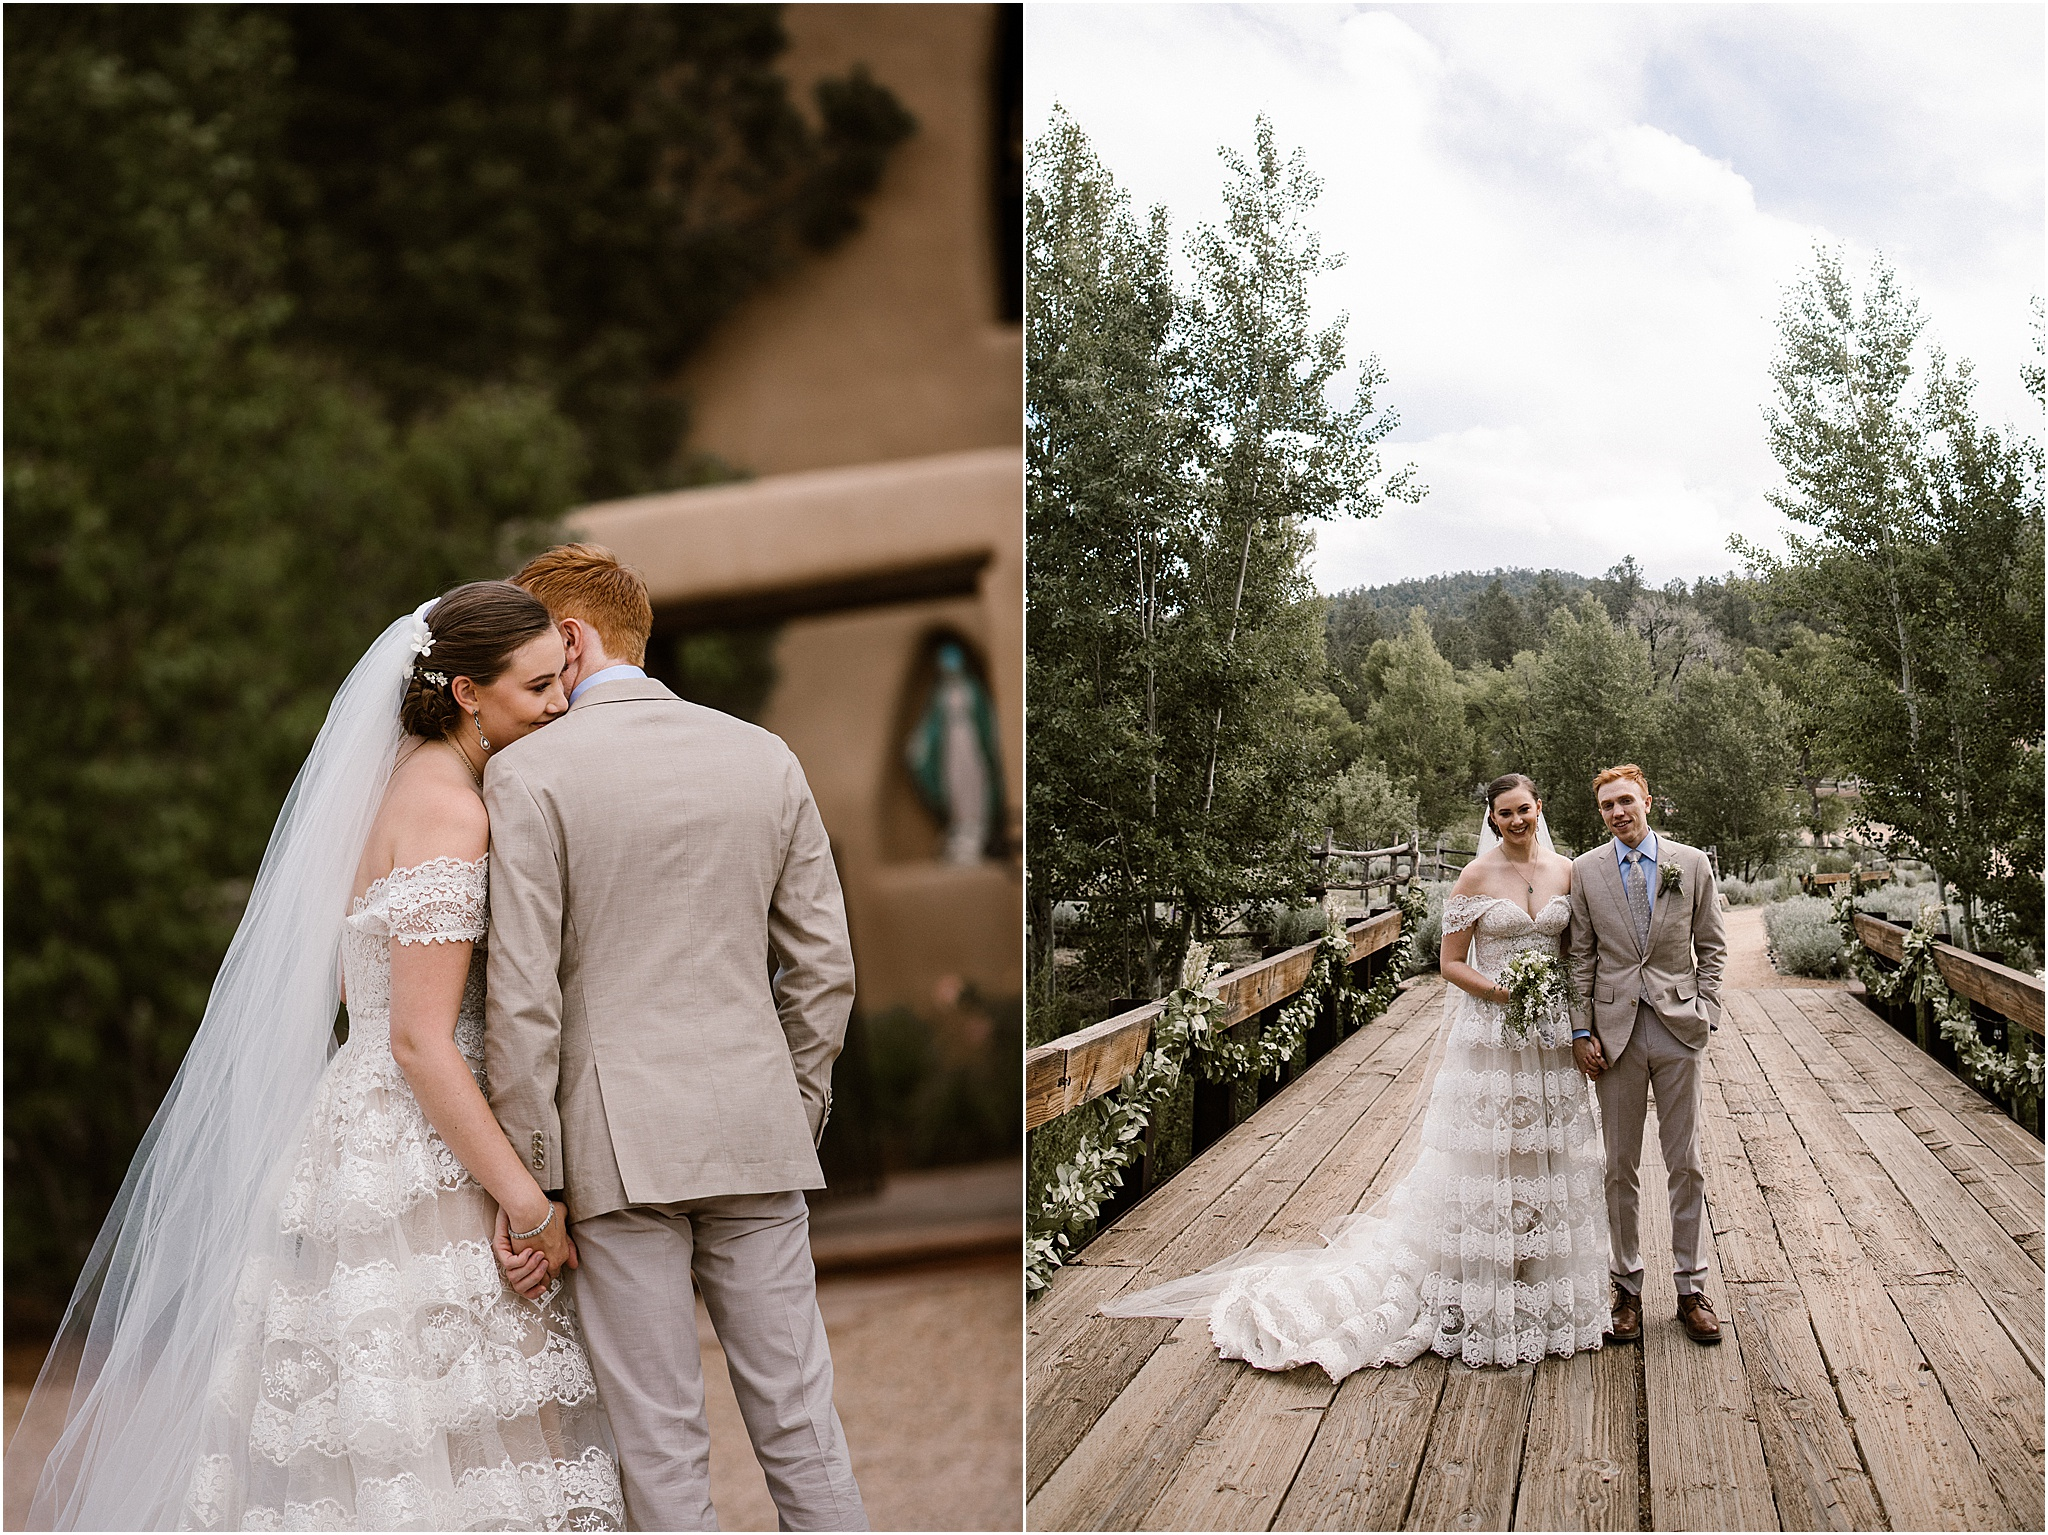 AMELIA_JASON_SANTA FE_ WEDDING_BLUE ROSE PHOTOGRAPHY89